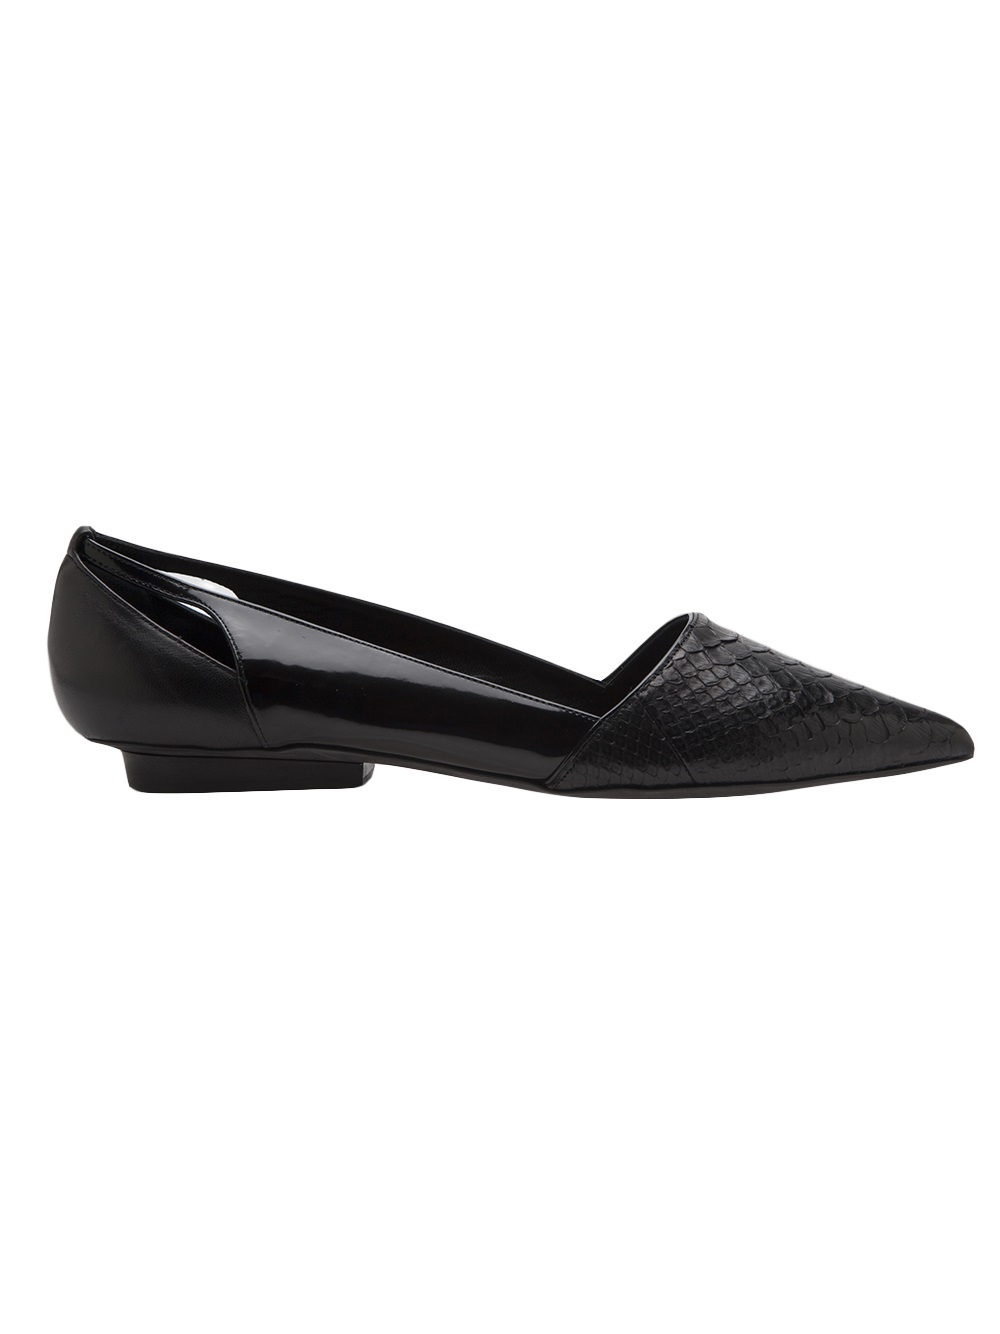 Lyst Narciso Rodriguez Pointed Toe Flat In Black